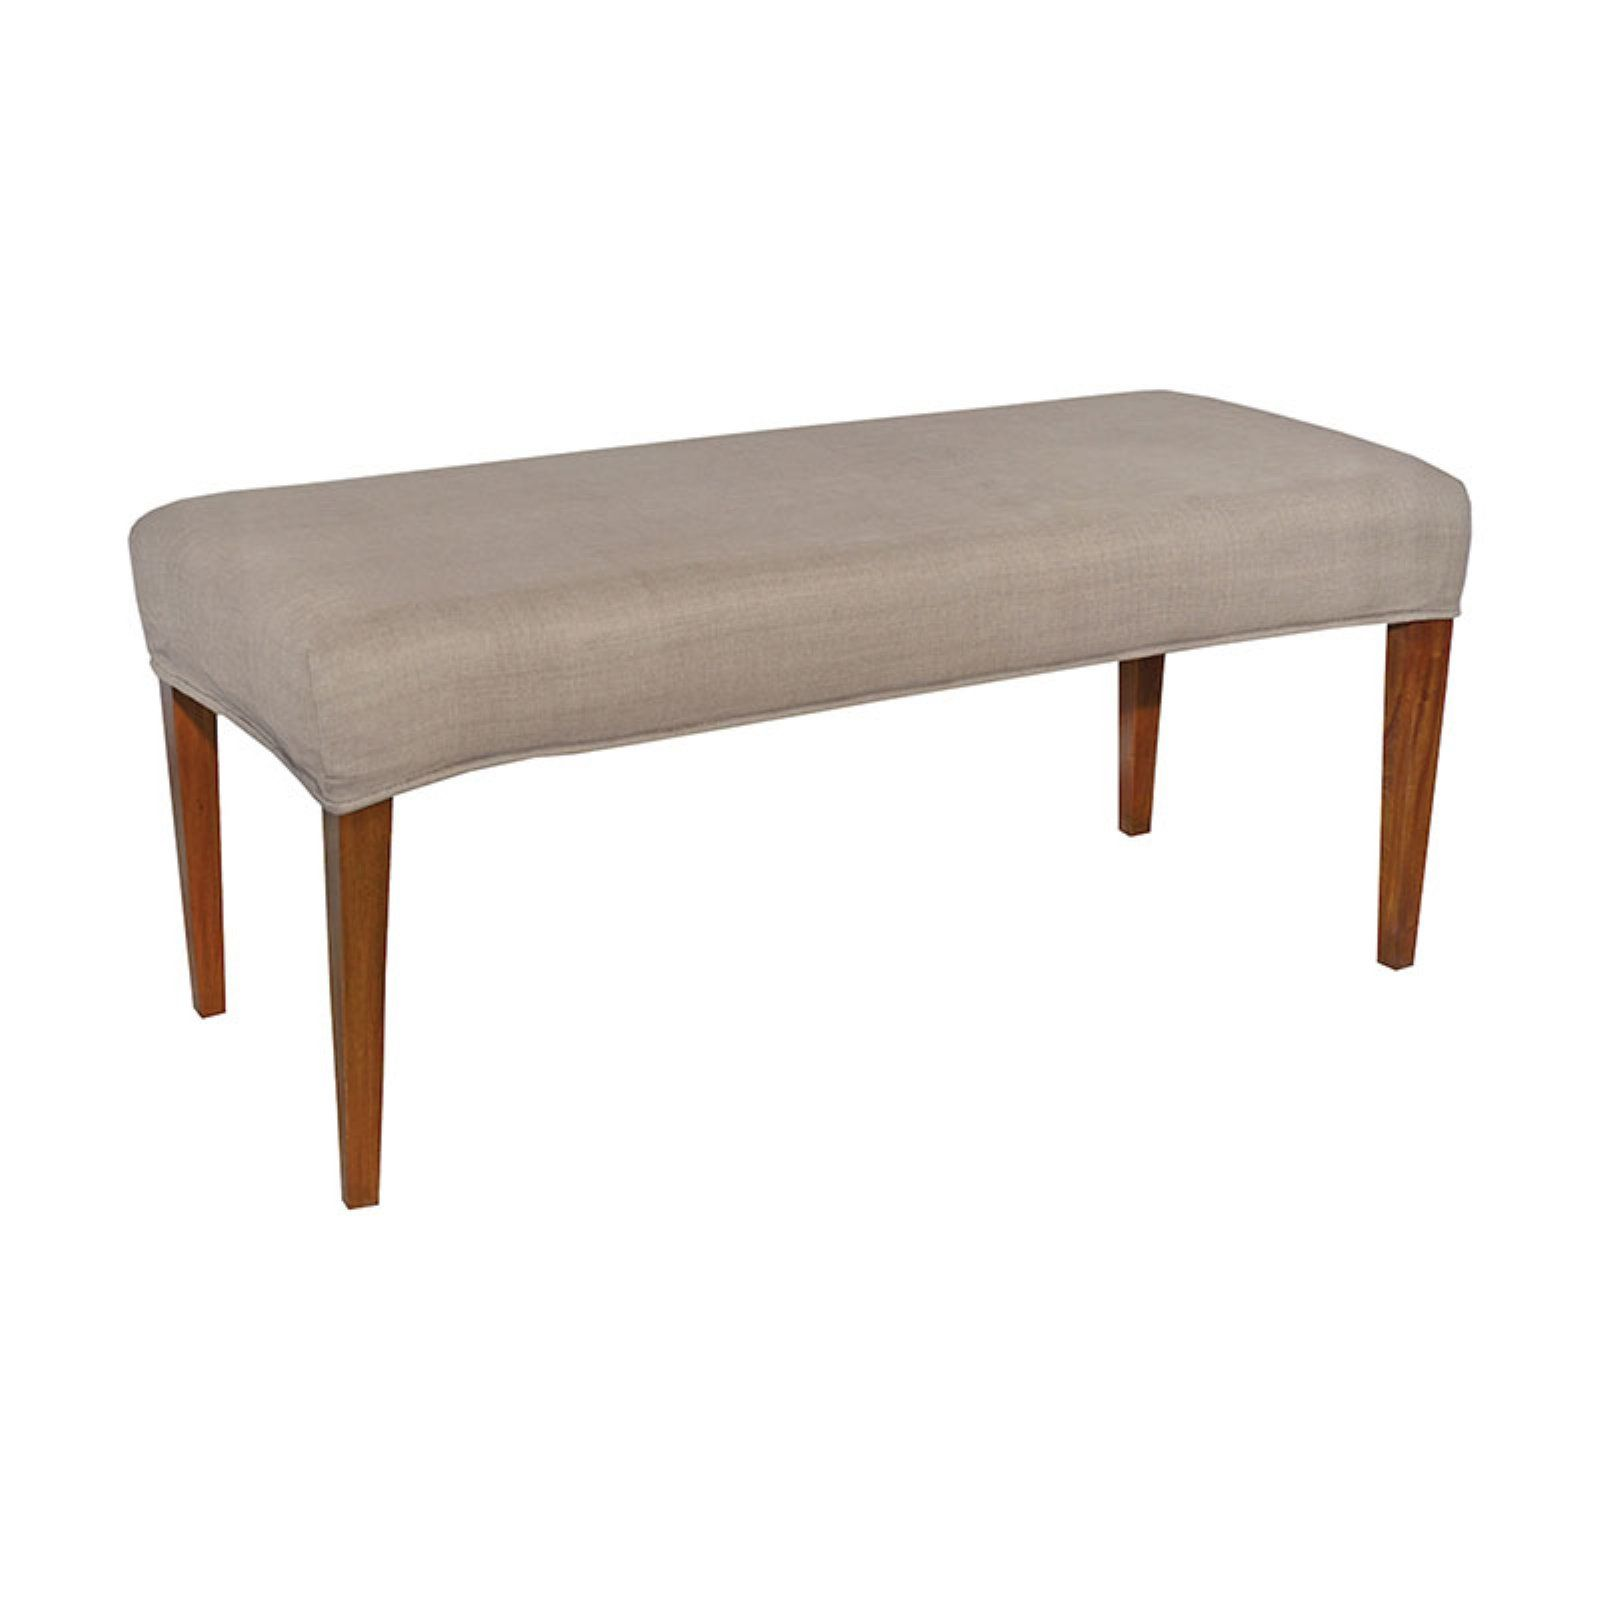 Sterling Couture Covers Double Bench Cover Light Cream Bench Covers Slipcovers For Chairs Dining Chair Slipcovers